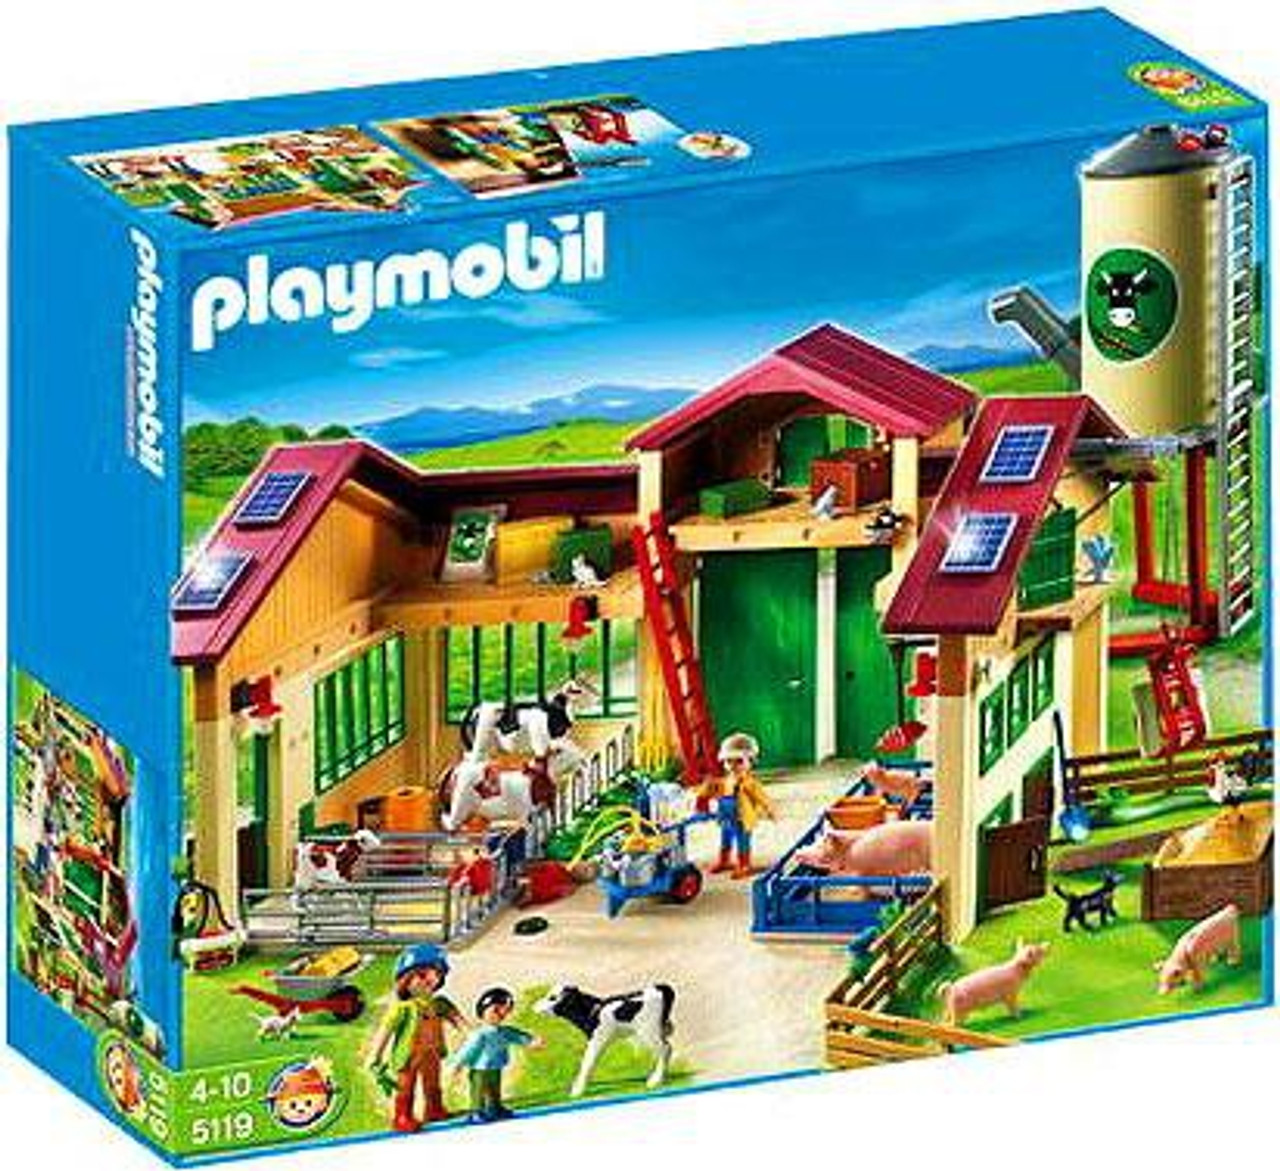 Playmobil Farm Barn with Silo Set #5119